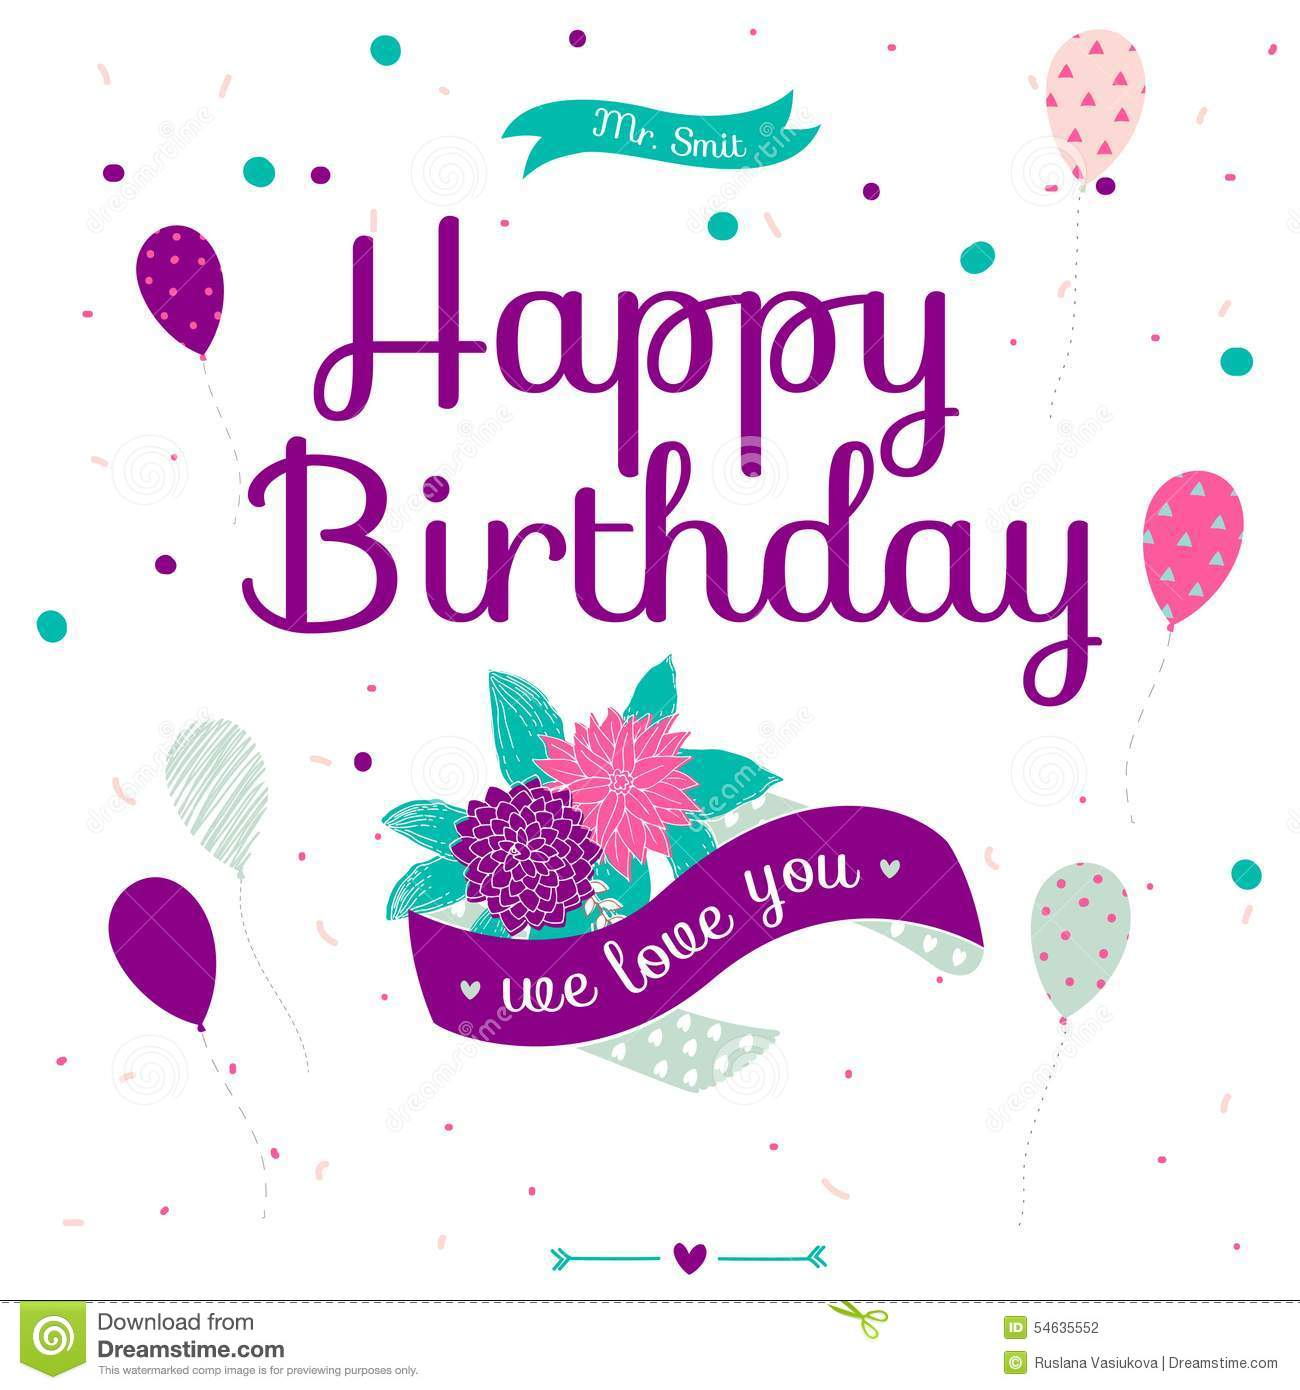 Happy birthday card with flowers balloons and ribbons illustration happy birthday card with flowers balloons and ribbons illustration 54635552 megapixl izmirmasajfo